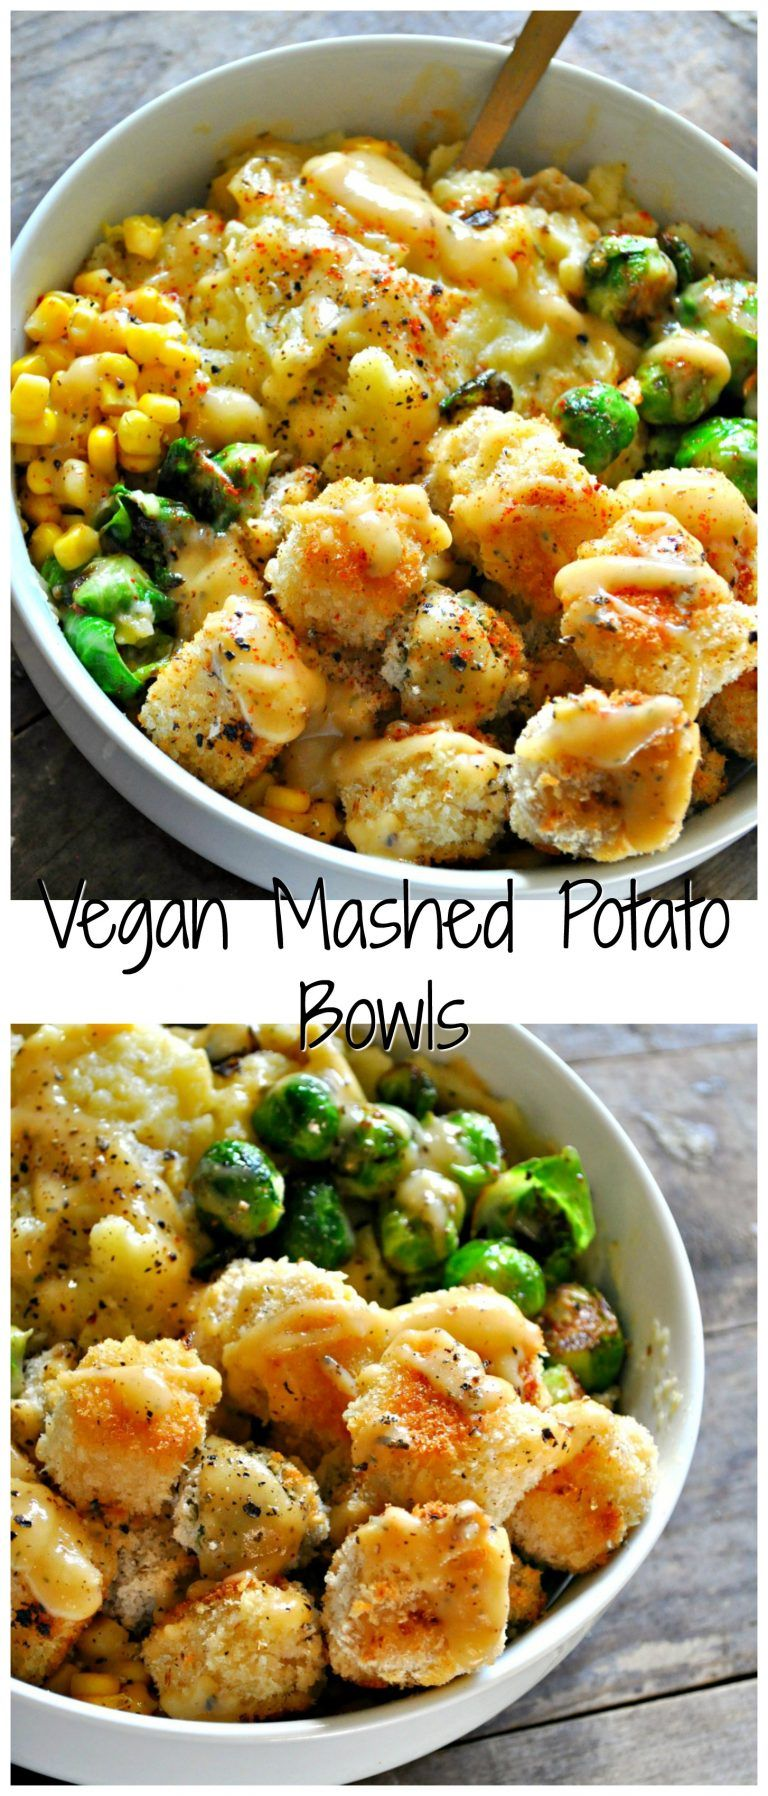 Vegan Mashed Potato Bowls